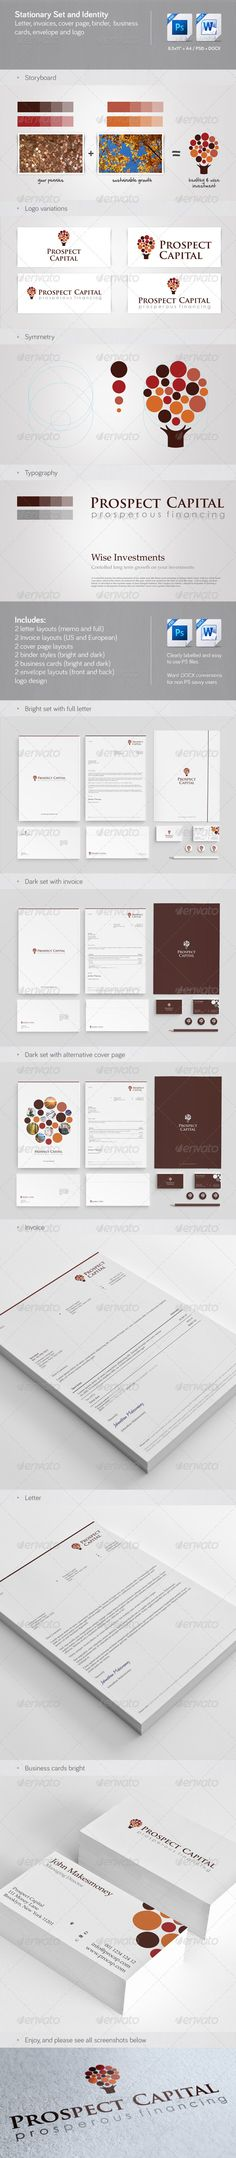 Green Research Center Corporate Identity Best Corporate identity - invoice print